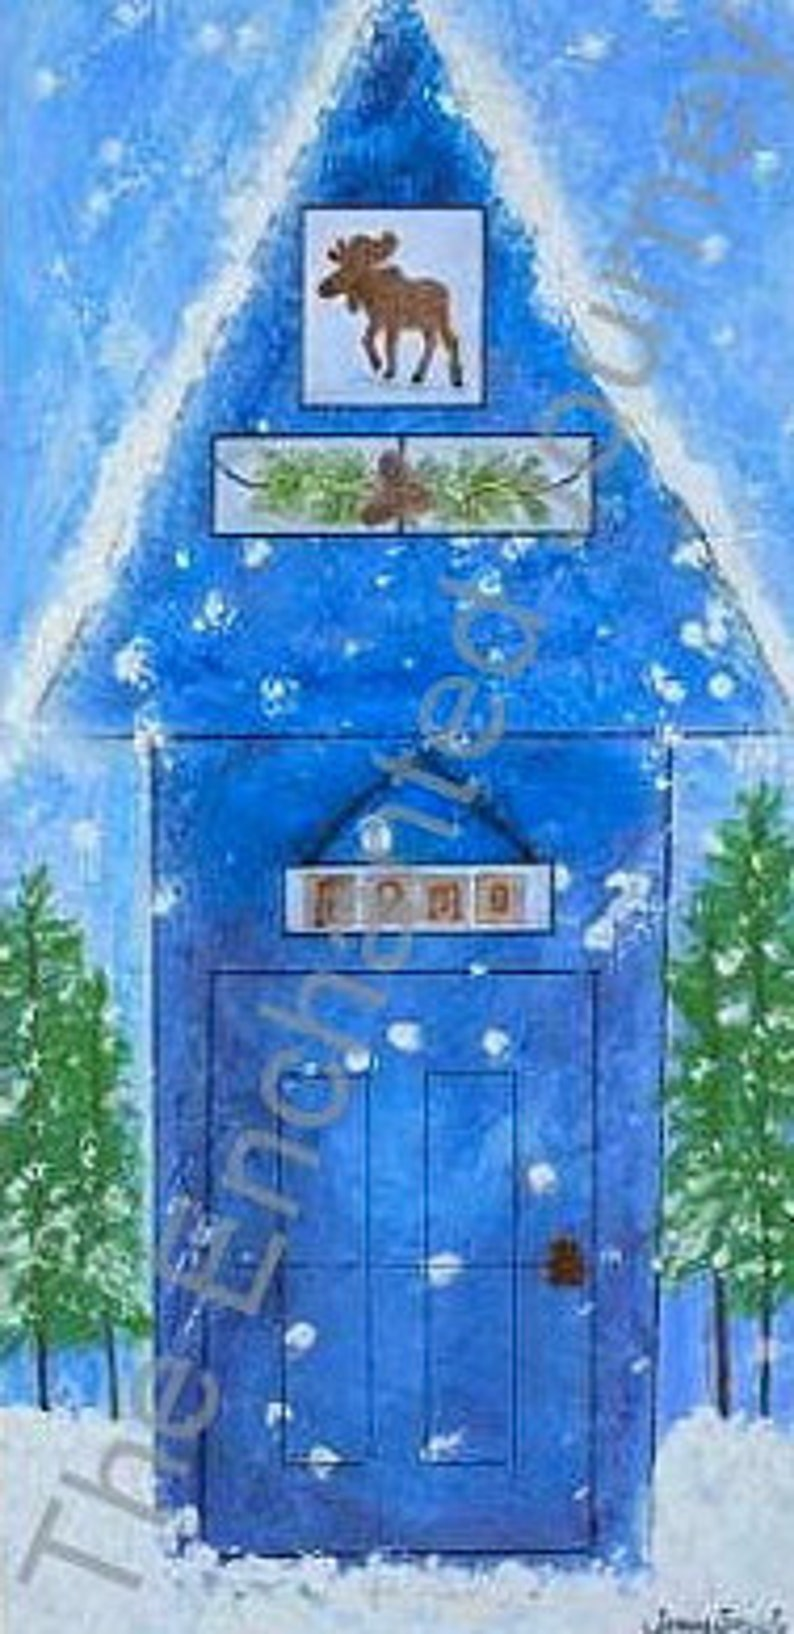 Winter House whimsical cabin in the snow with trees and moose image 0